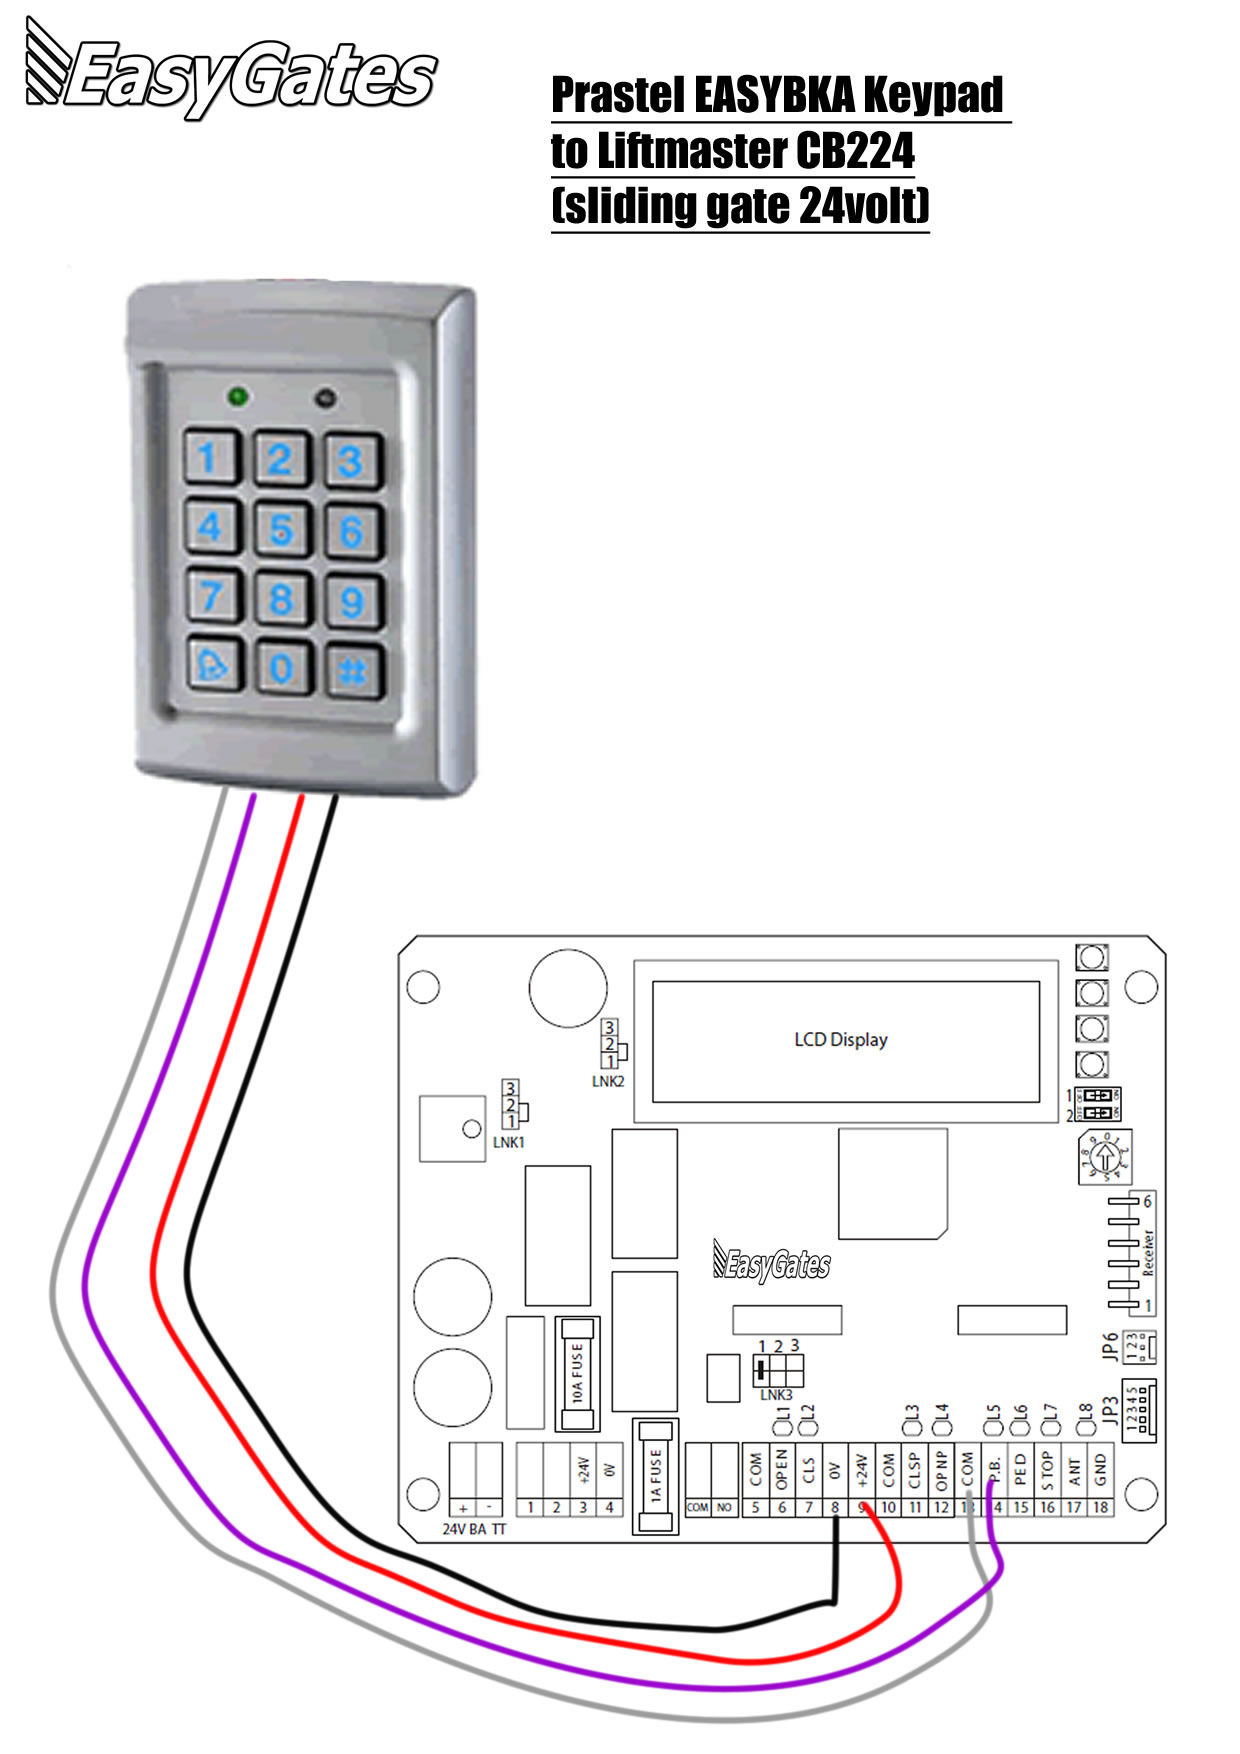 How to    wire    EASYKA    keypad    to CB224 control